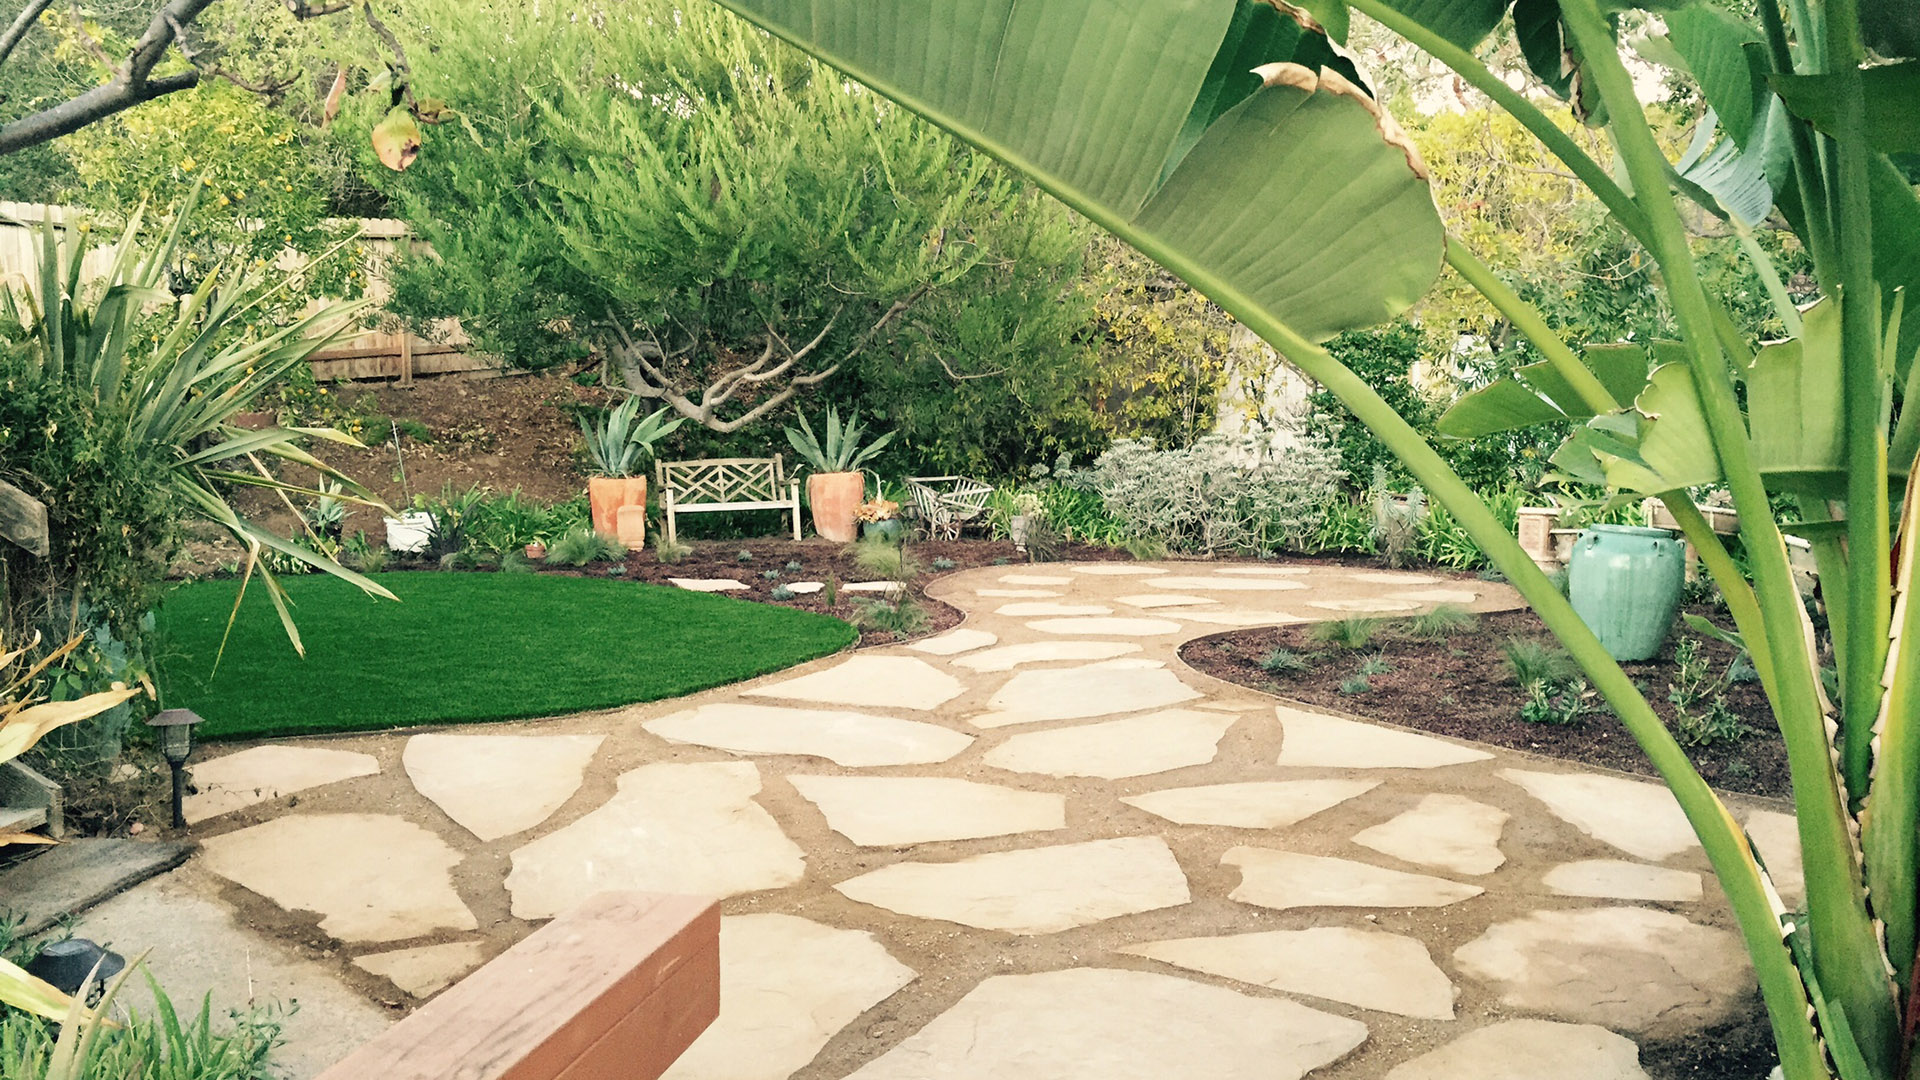 patio for low maintenance yards by EcoLawn Santa Barbara